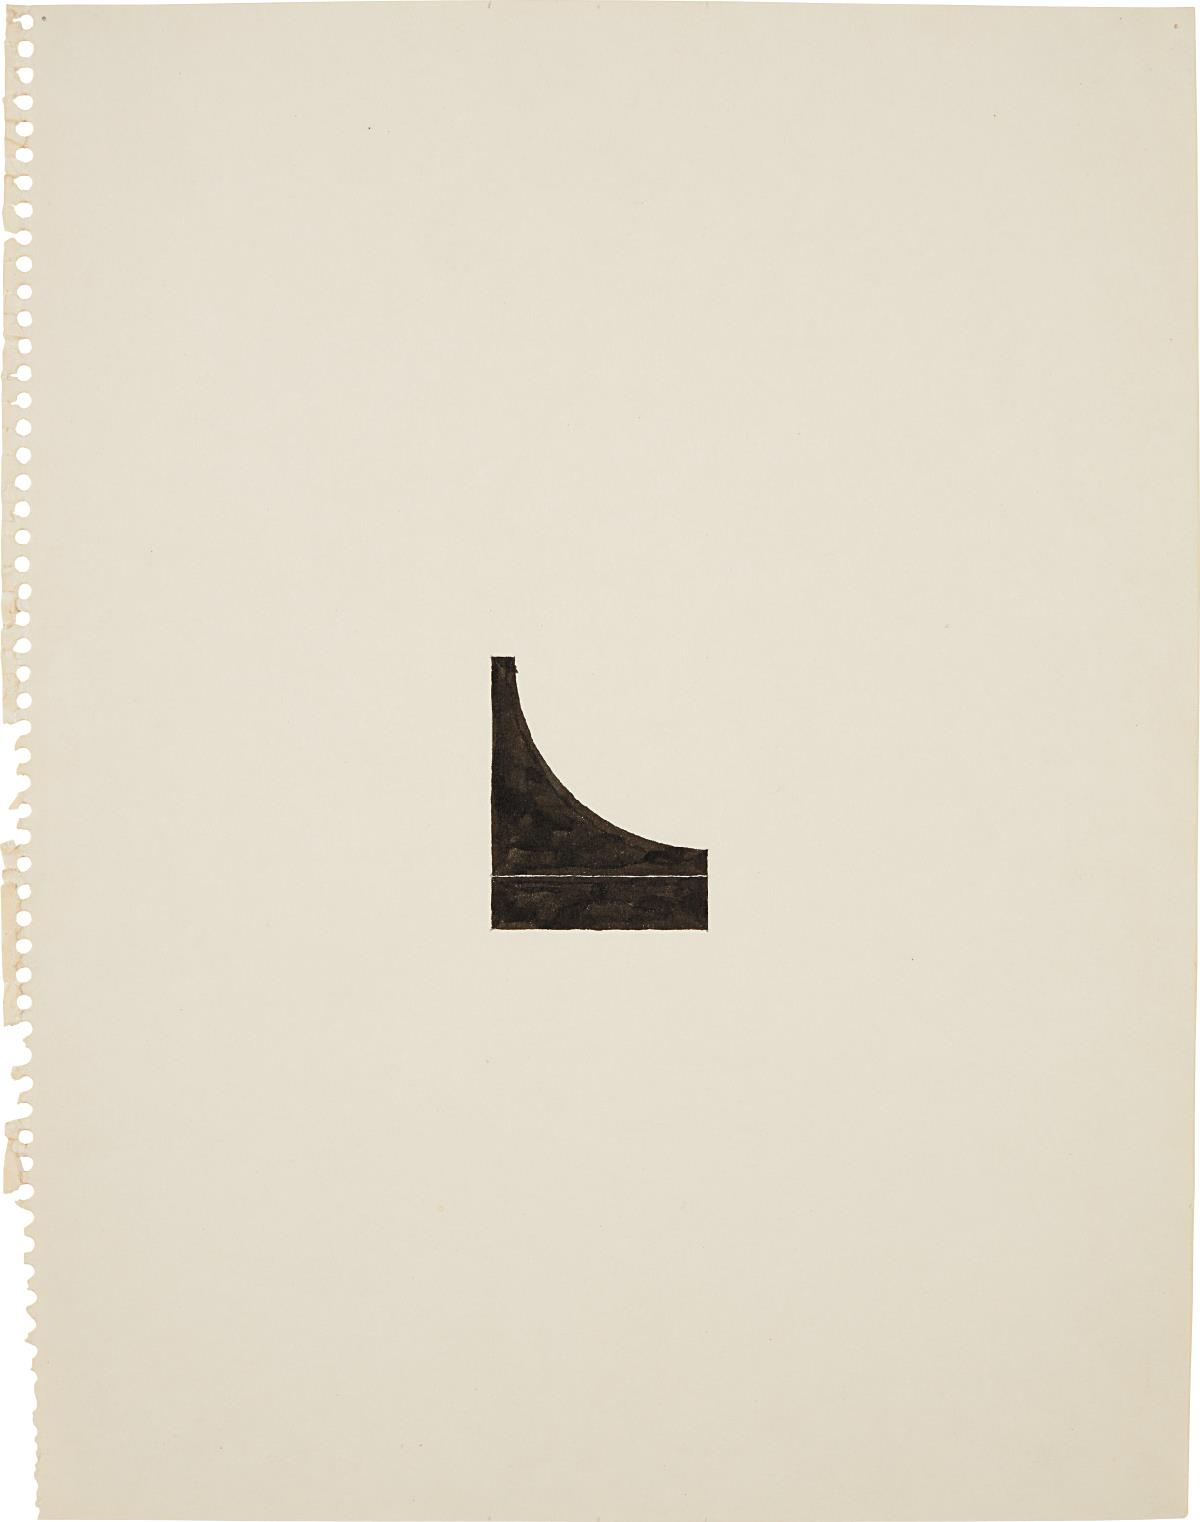 Richard Tuttle-No. 127, 60 Center Works (4)-1975